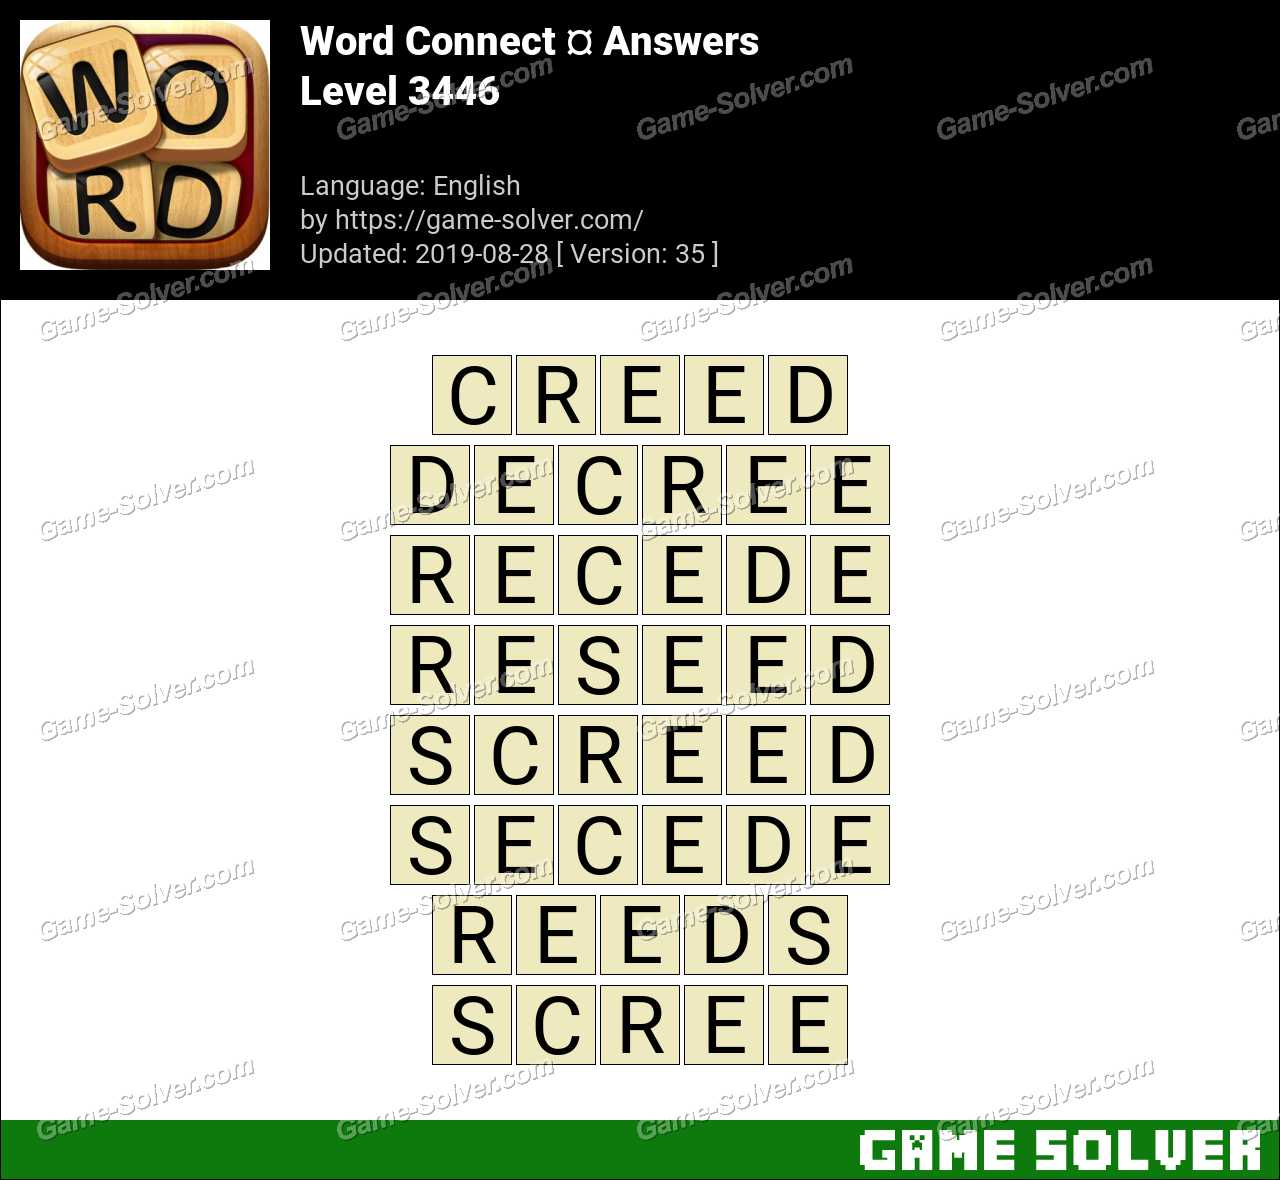 Word Connect Level 3446 Answers